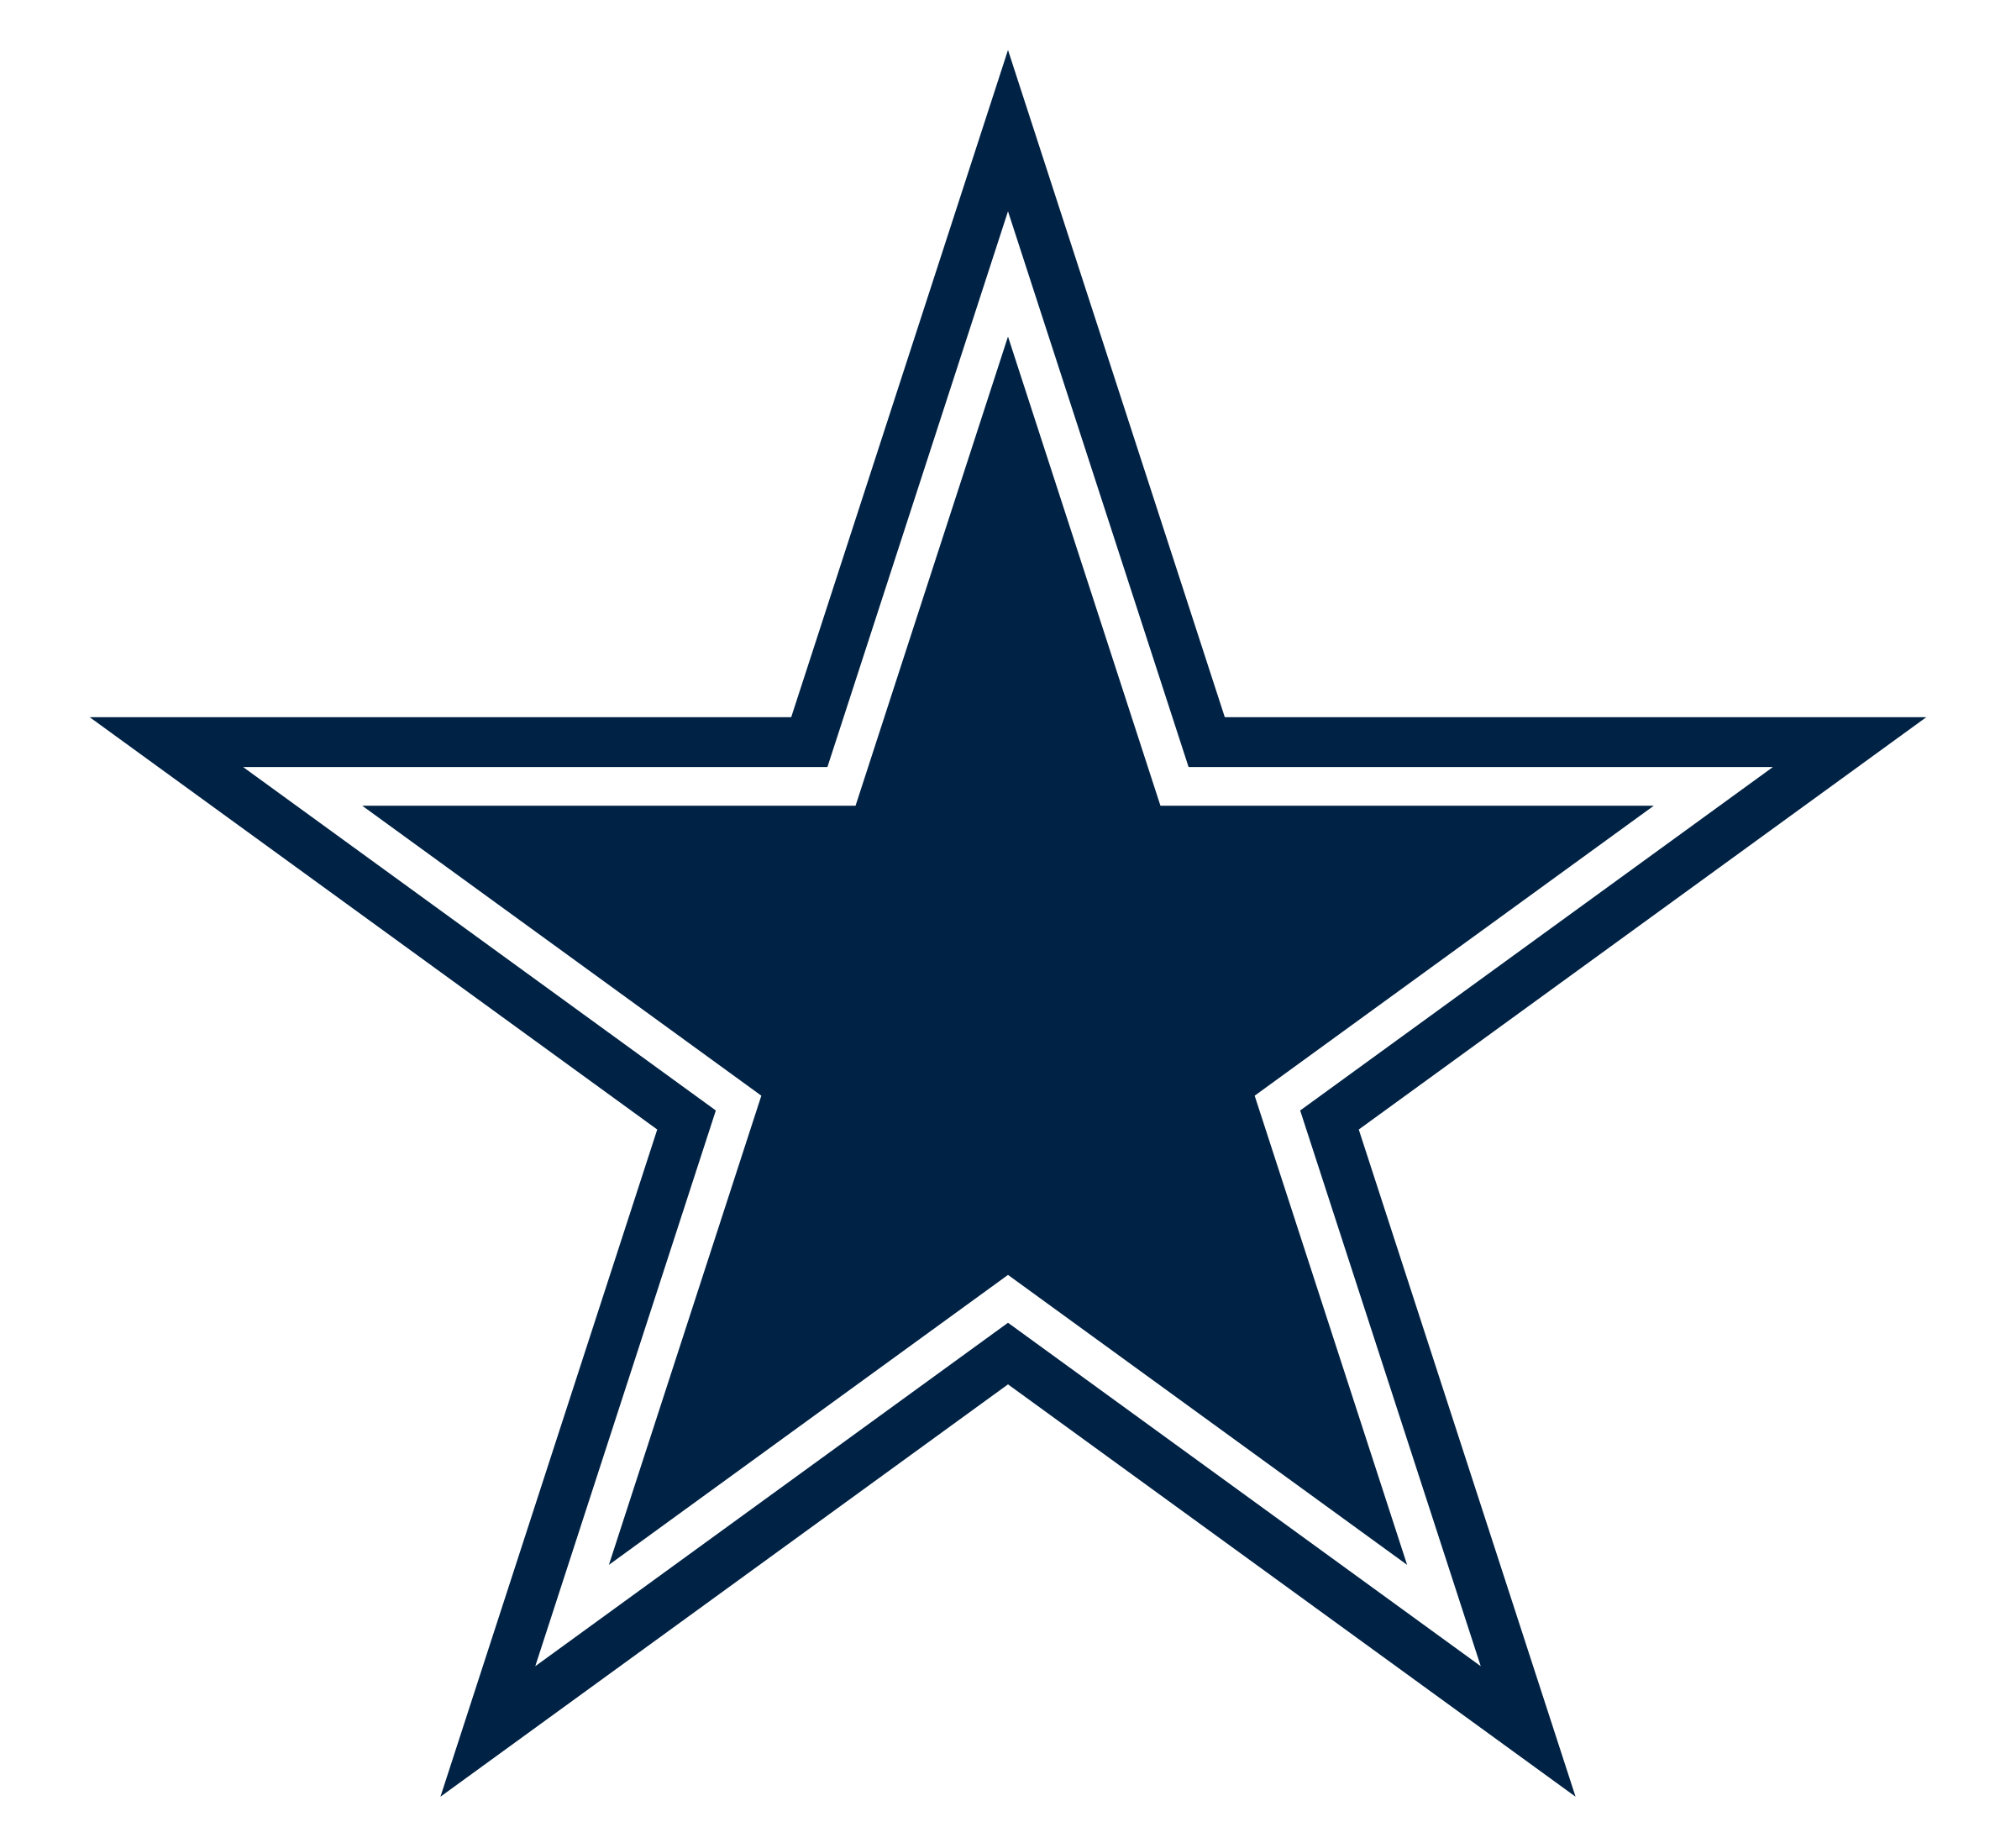 Star vector png. Dallas cowboys logo transparent